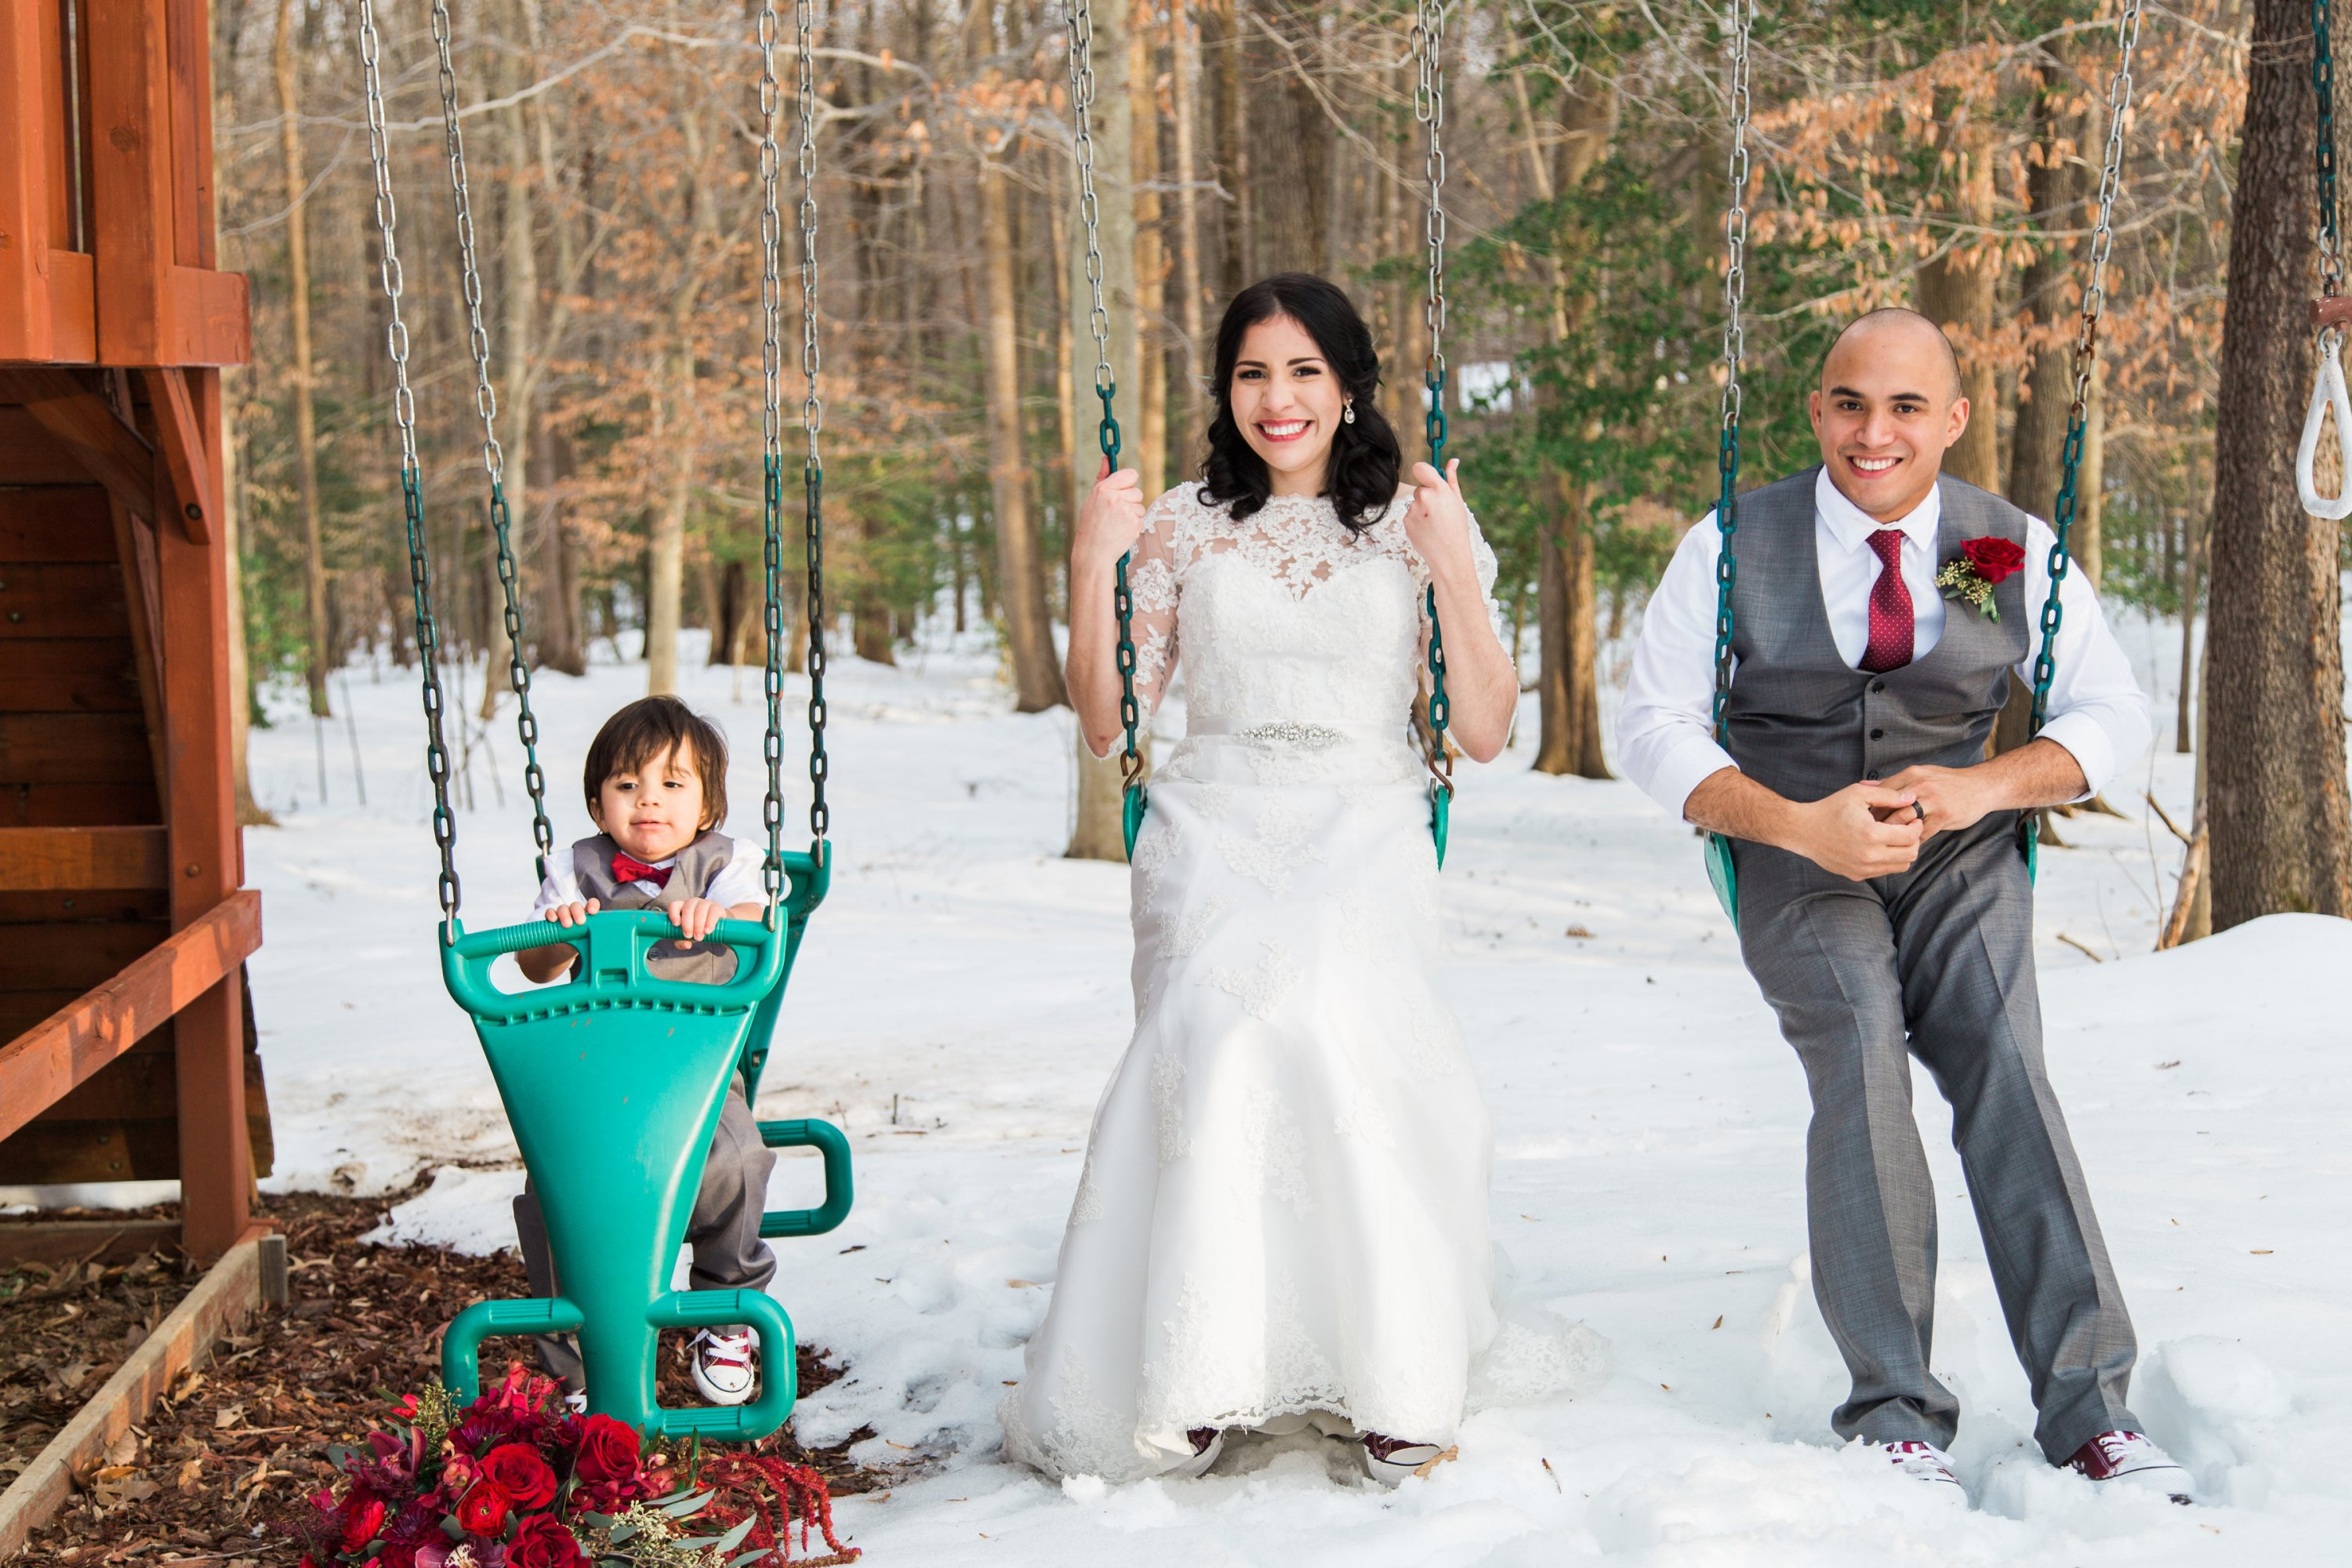 Carla Torres Carlos Rodriguez Alicia Wiley Photography Snow Day